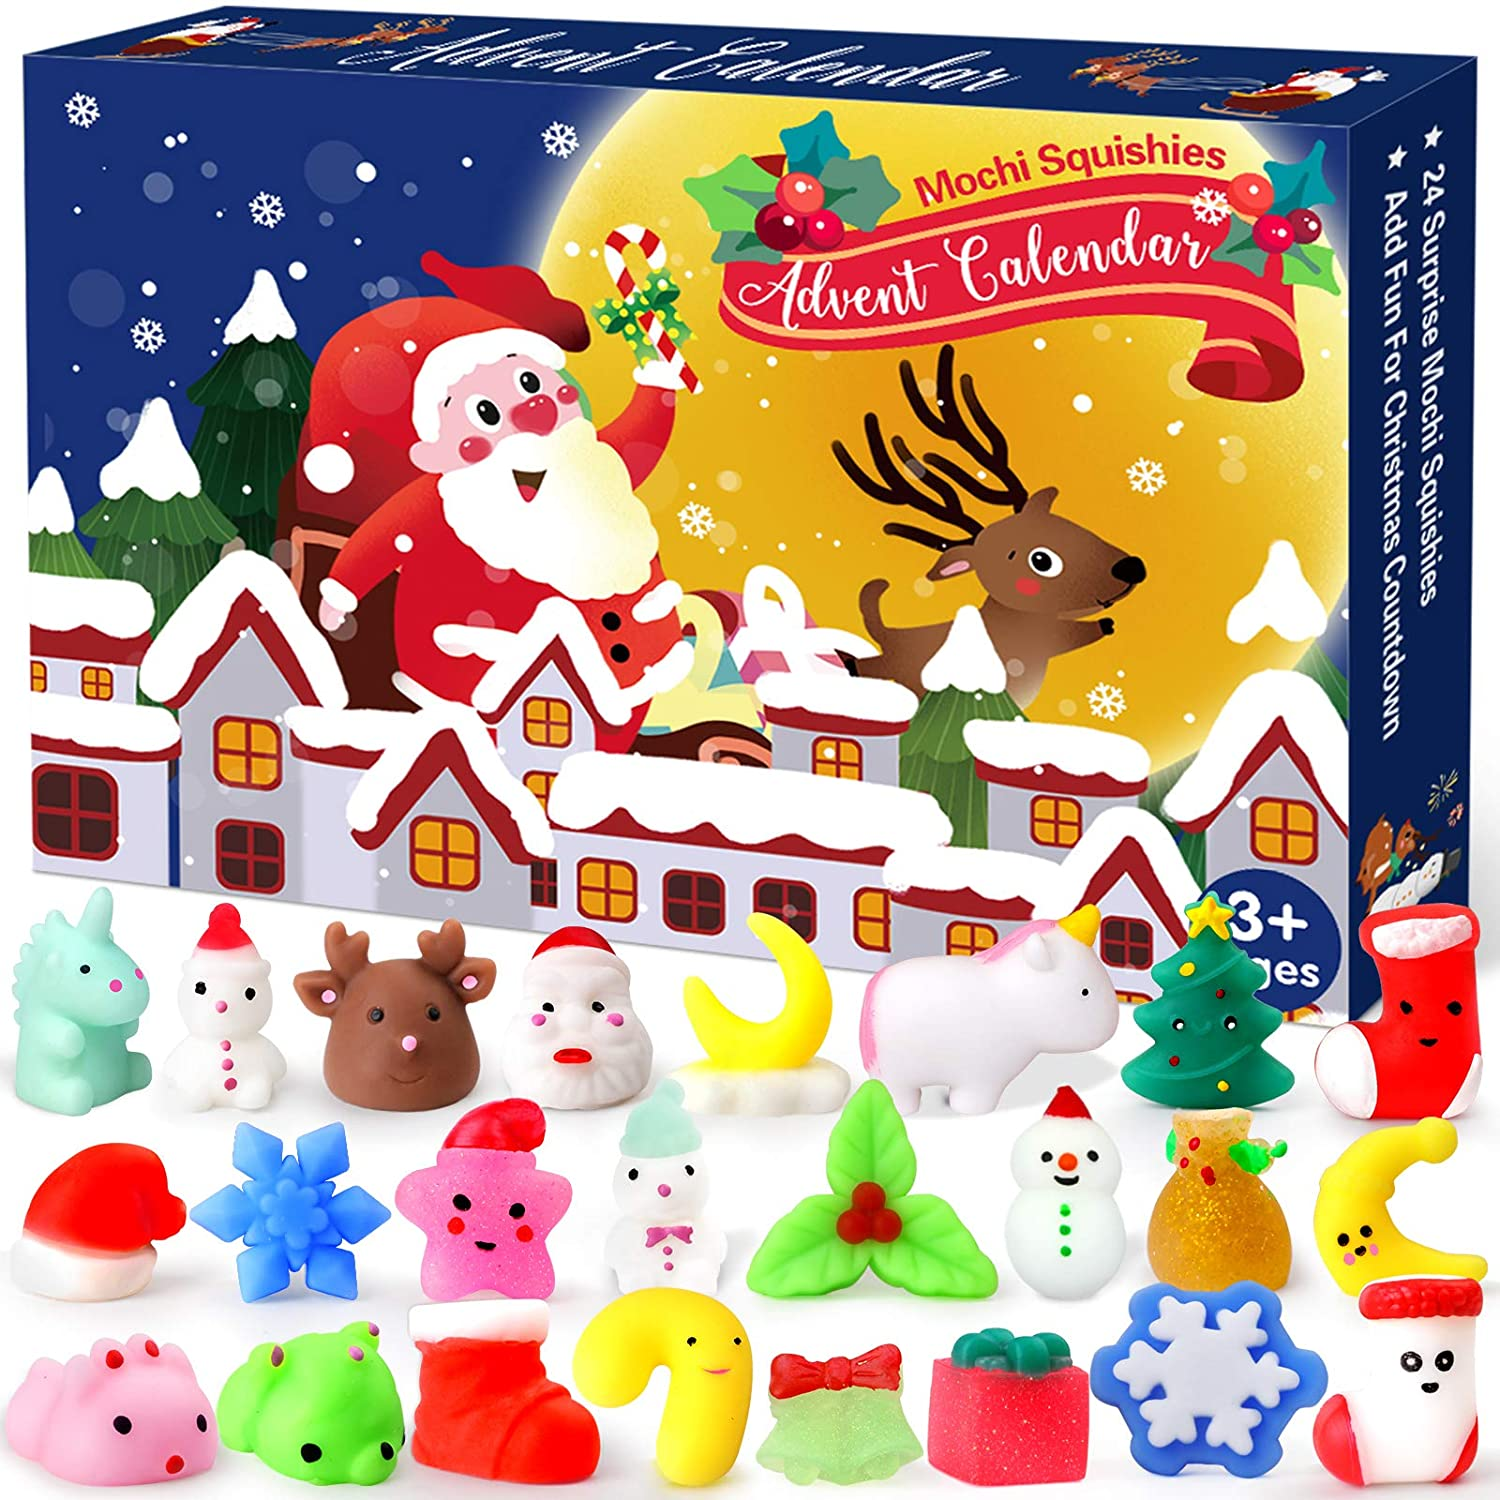 Christmas Advent Calendar 2020 Countdown Calendars Toys for Kids LUDILO Christmas Mochi Squishy Toys 24Pcs Different Cute Mochi Animals Relief Stress Toys Unique Advent Calendars for Girls Boys